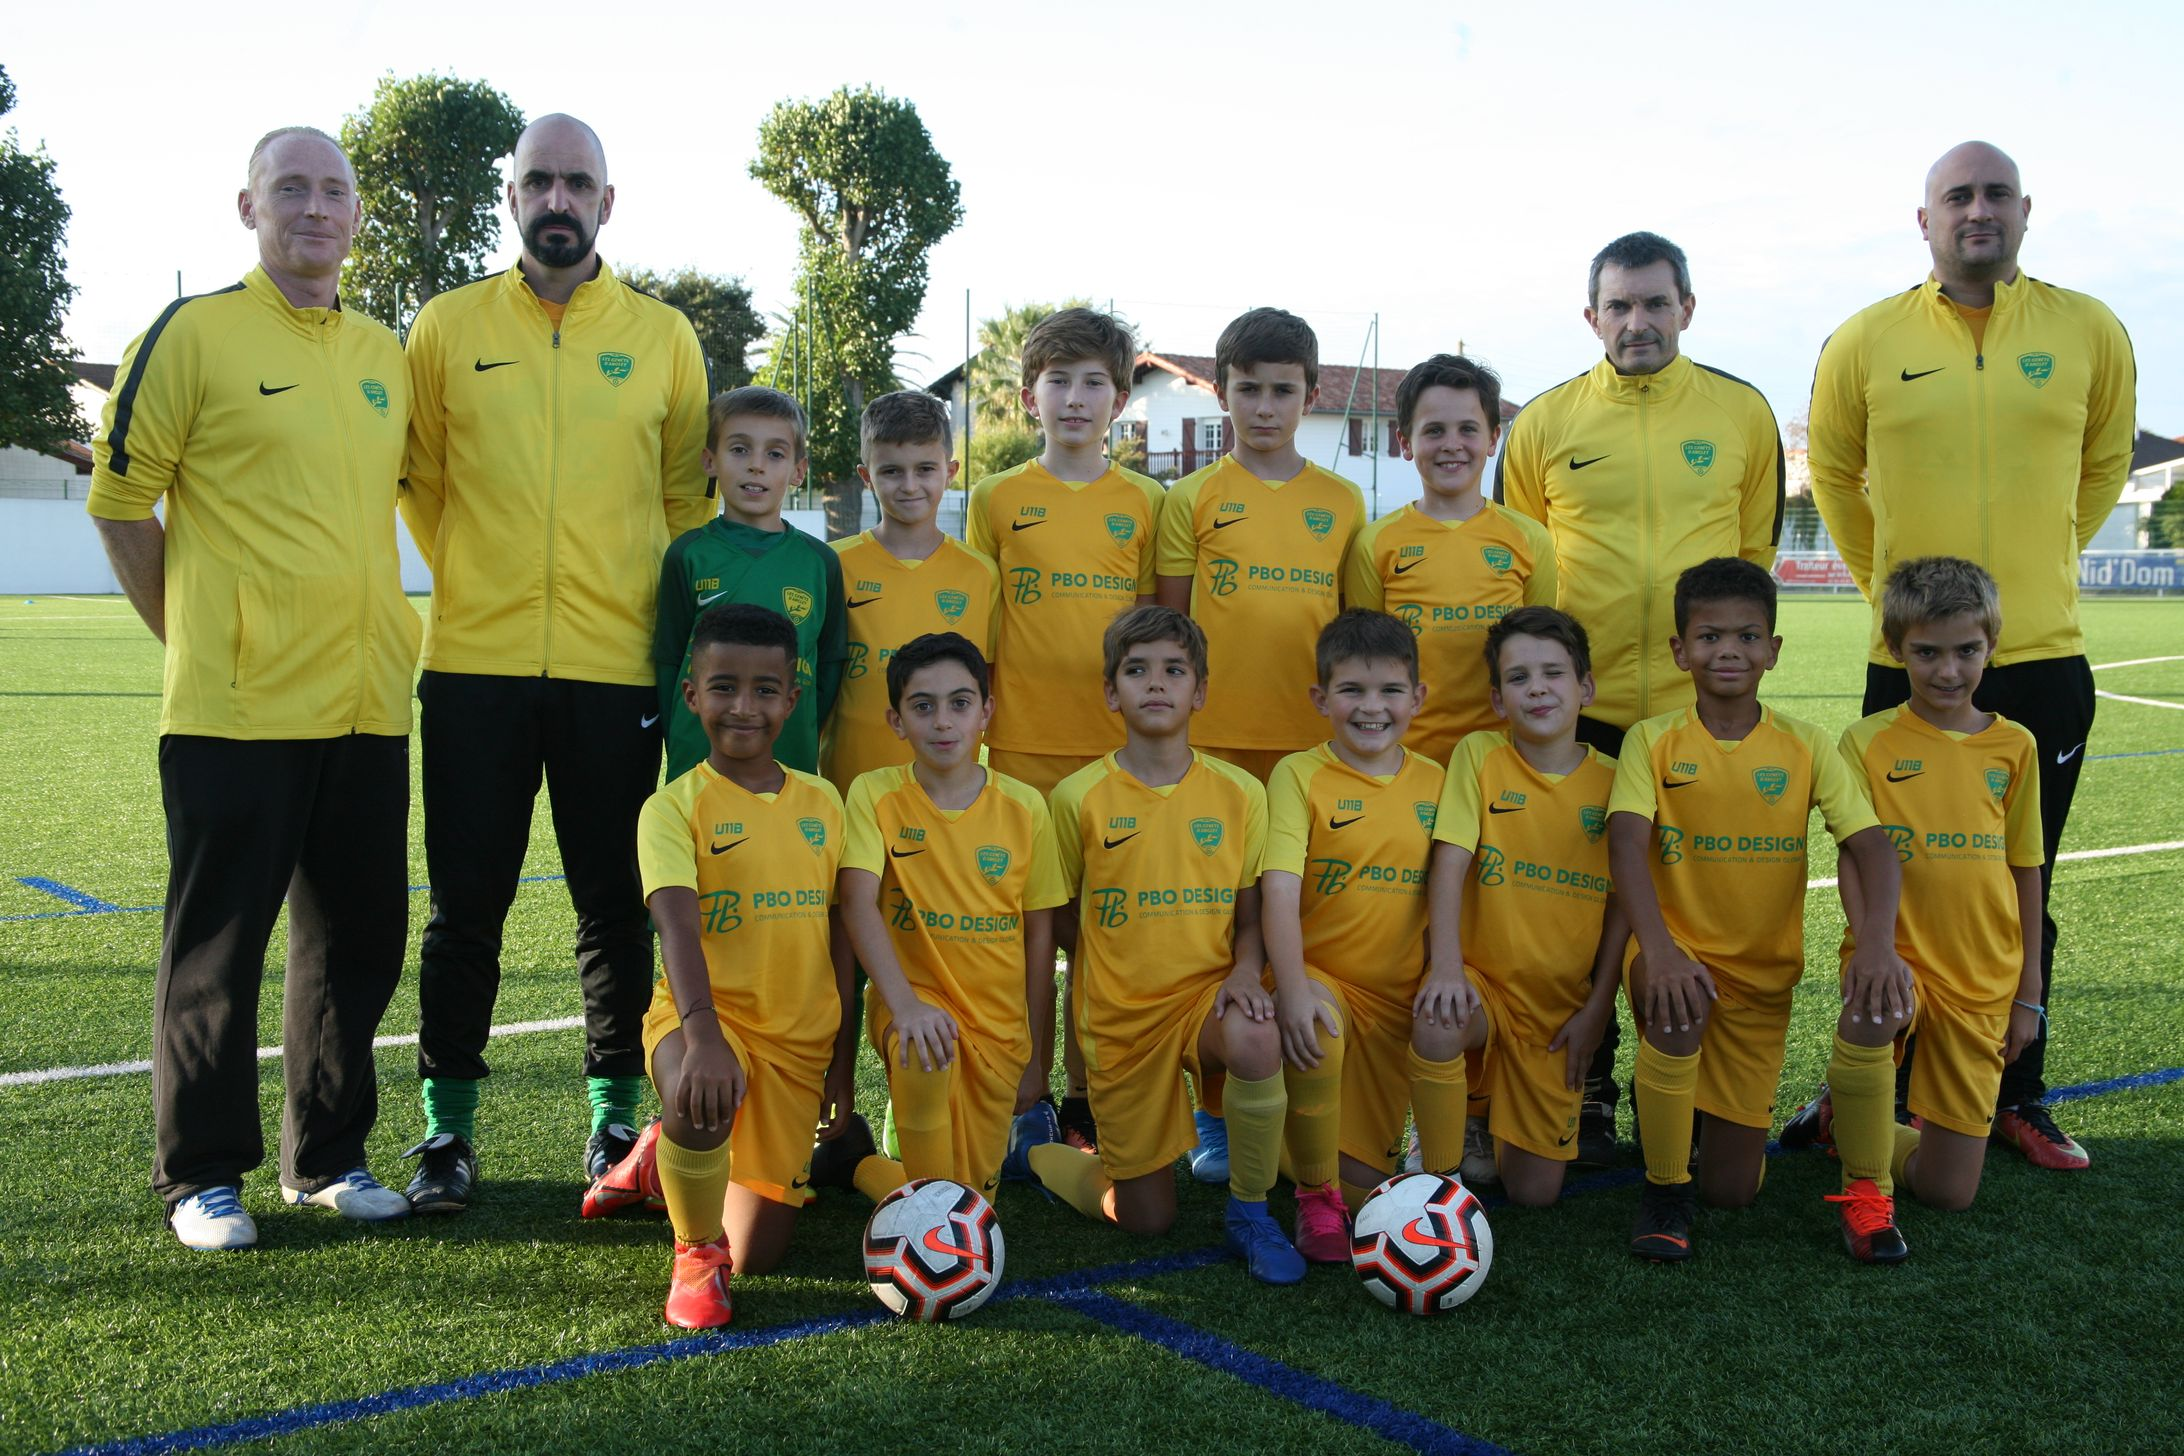 U11 1 - EXCELLENCE